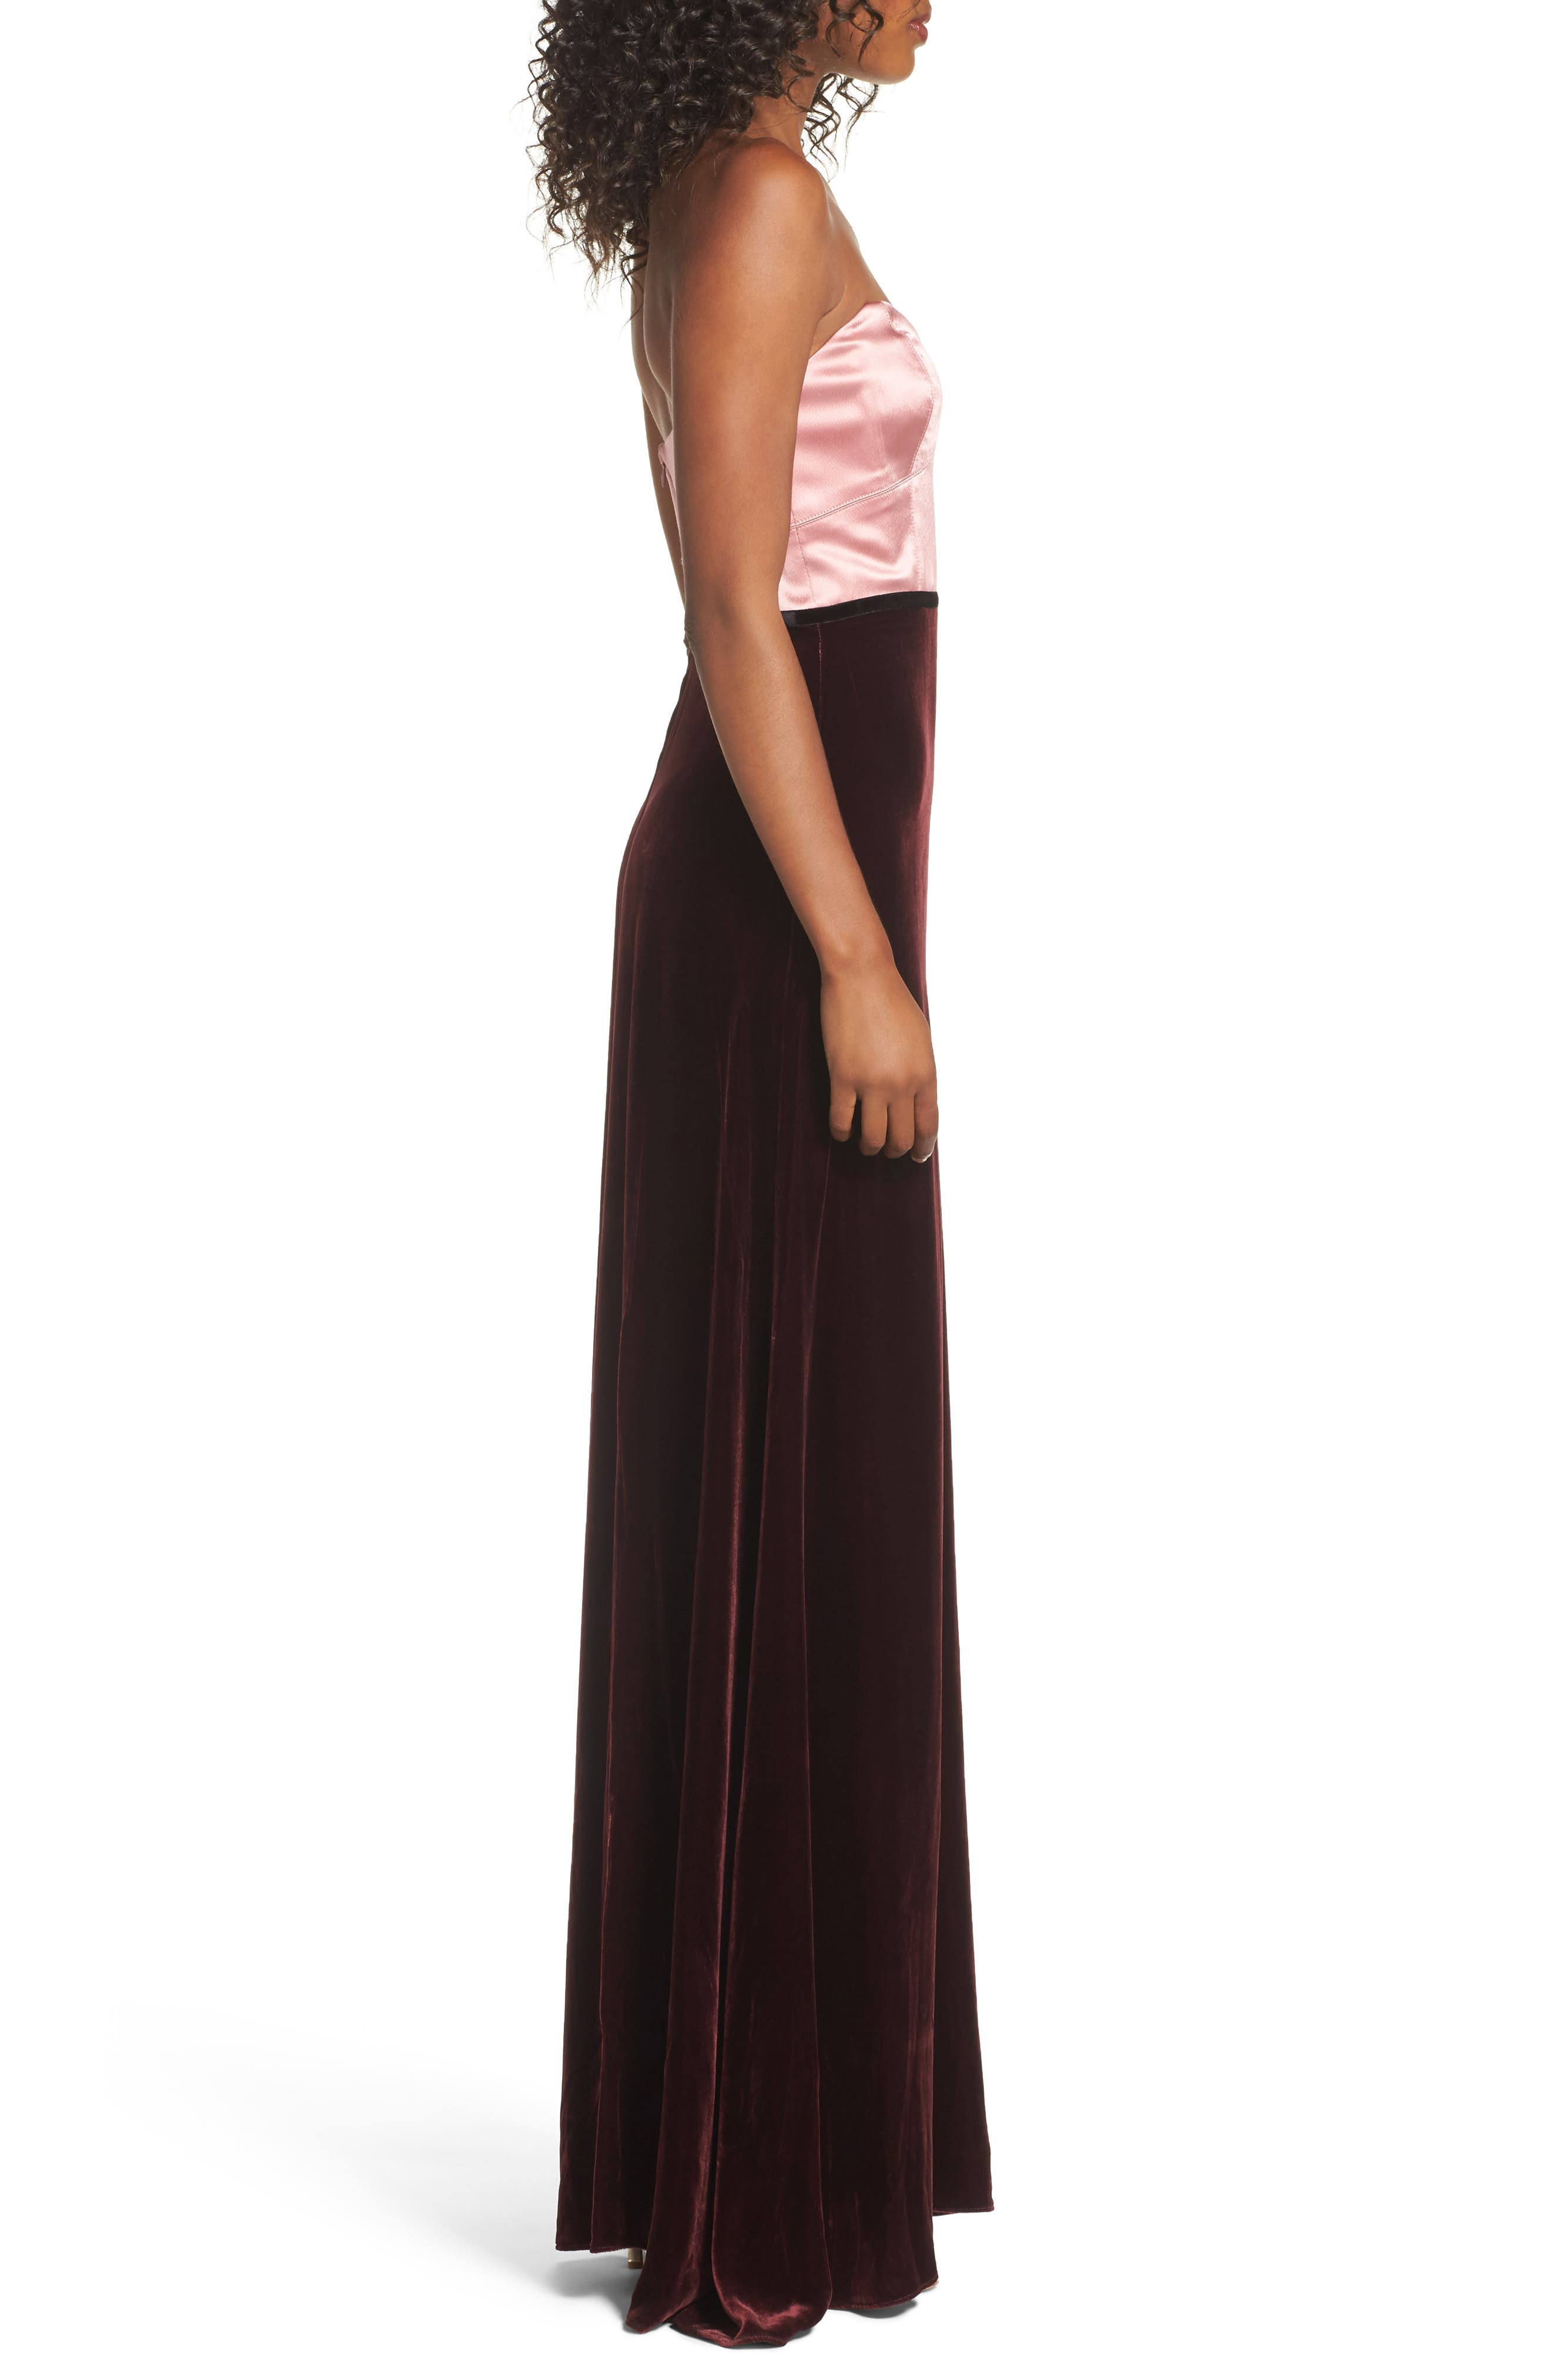 Strapless Satin & Velvet Gown,                             Alternate thumbnail 3, color,                             Prim Rose/ Raisin/ Black